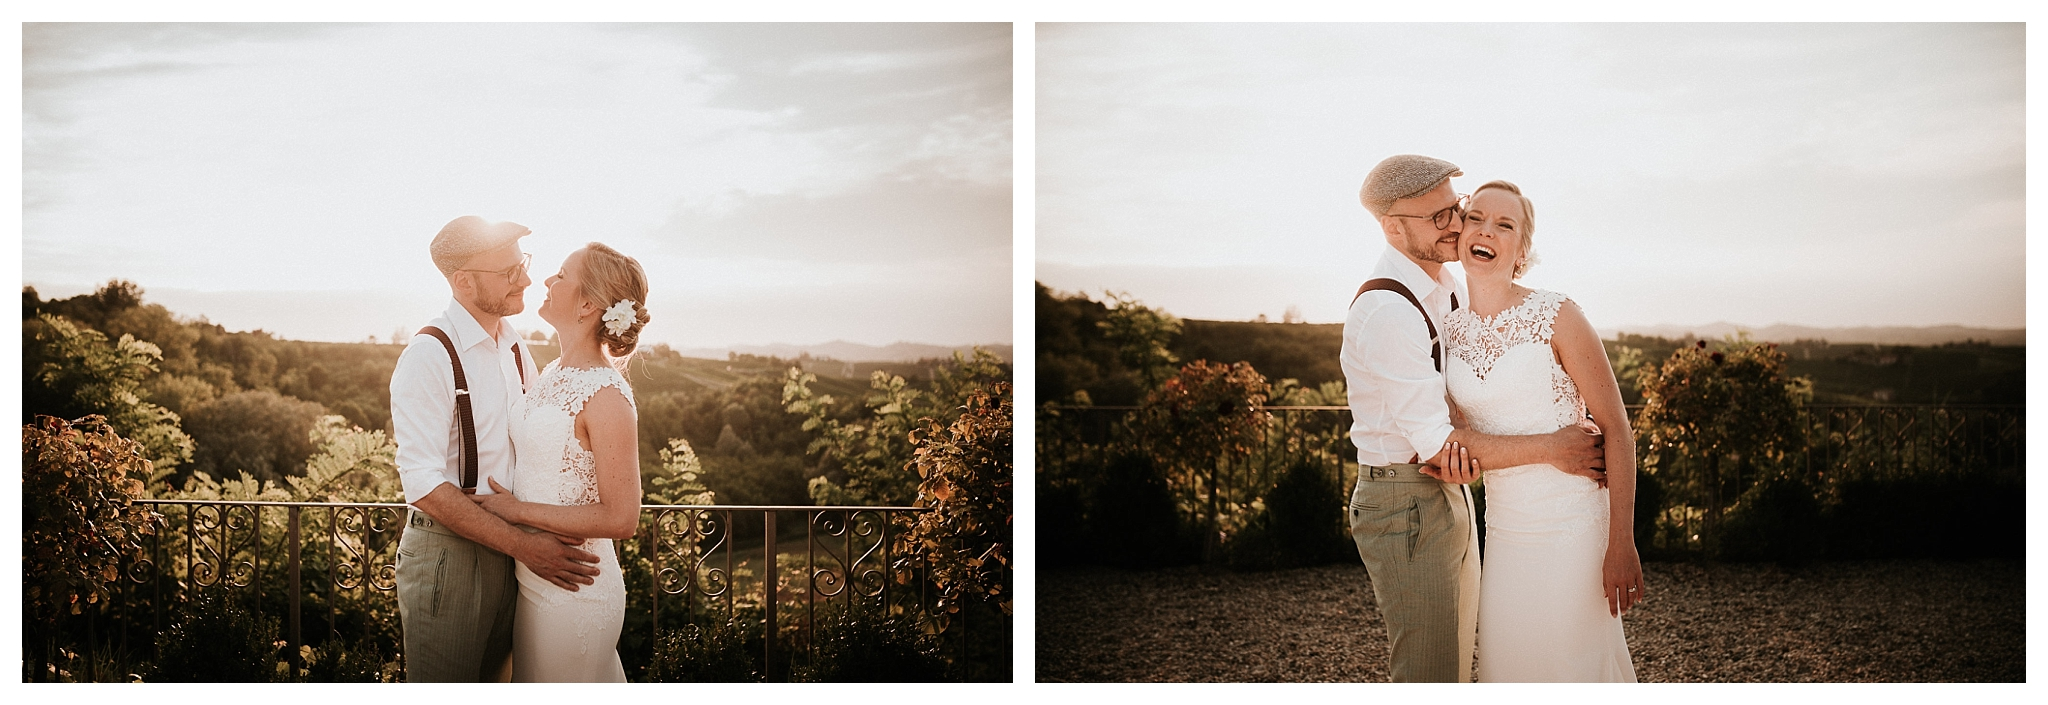 wedding photo shoot at sunset in the countryside of piedmont, Italy